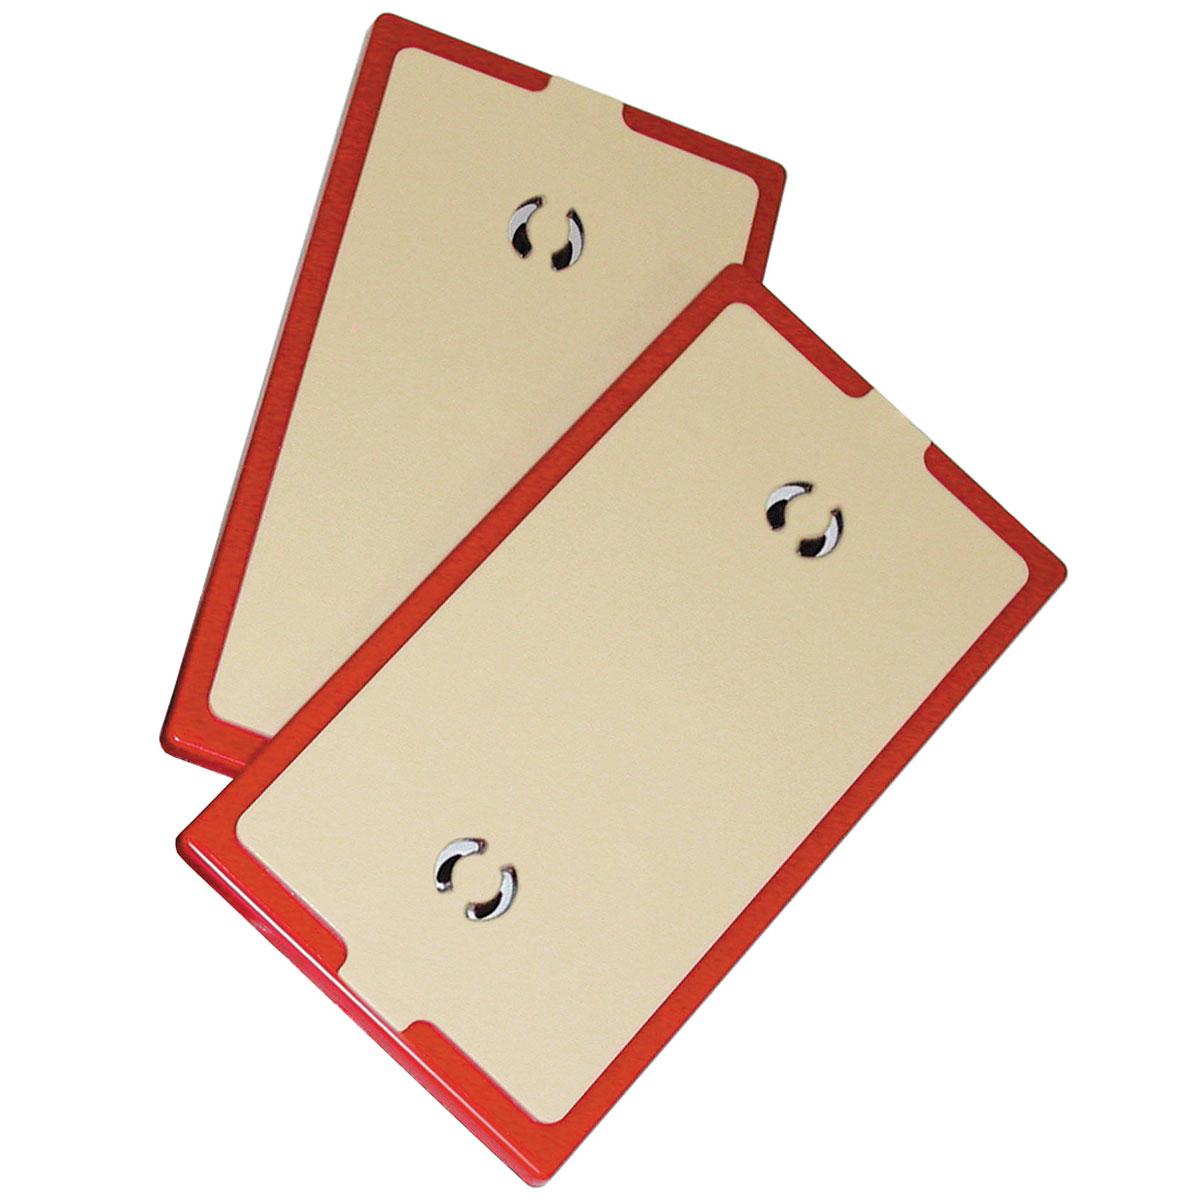 ZipWall NSP2 Replacement Non-Skid Plates - 2 Pack